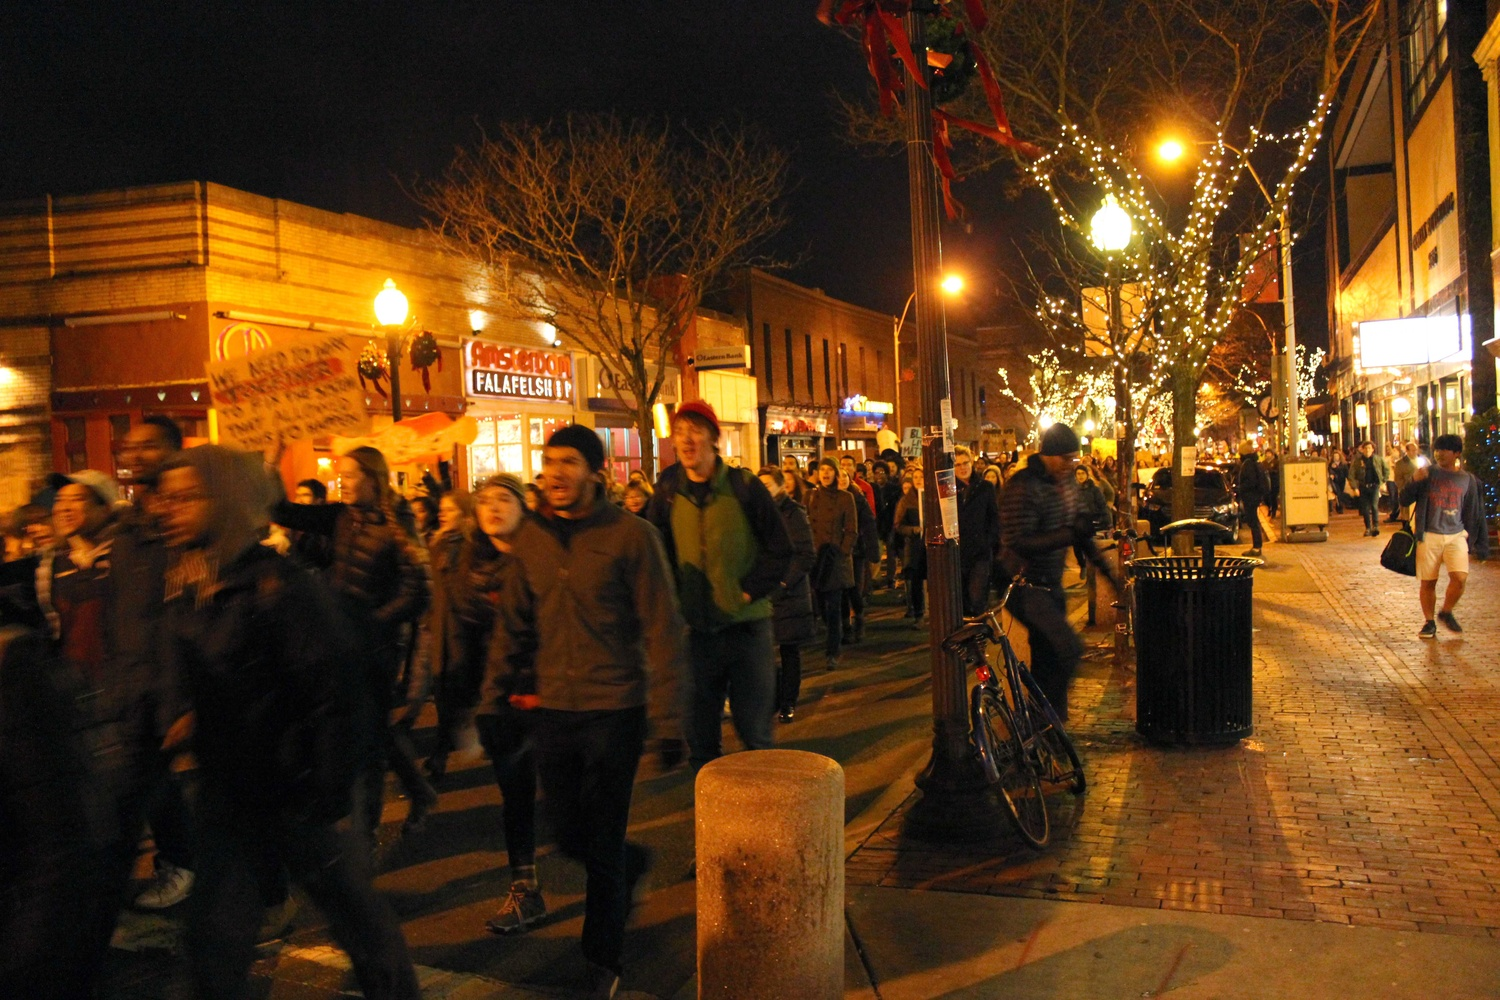 Protestors march from Davis Square to Porter Square on Friday evening in response to the recent non-indictments of the officers in the Michael Brown and Eric Garner cases. Protestors began in Davis Square and continued to MIT, laying down at key transportation sites.